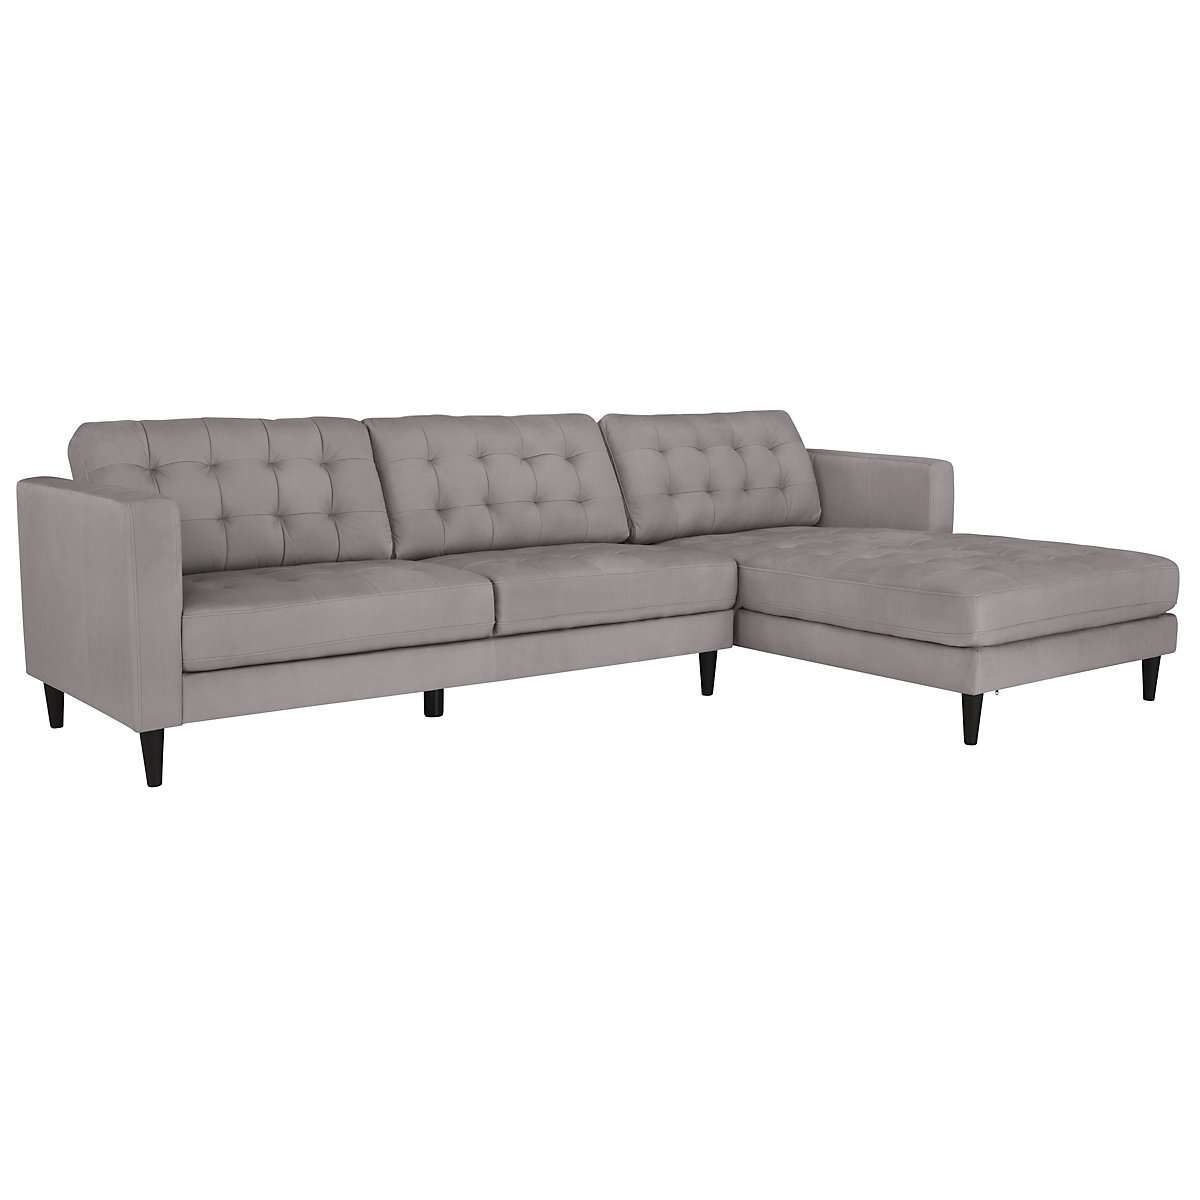 City furniture shae light gray microfiber right chaise for Gray microfiber sectional sofa with chaise